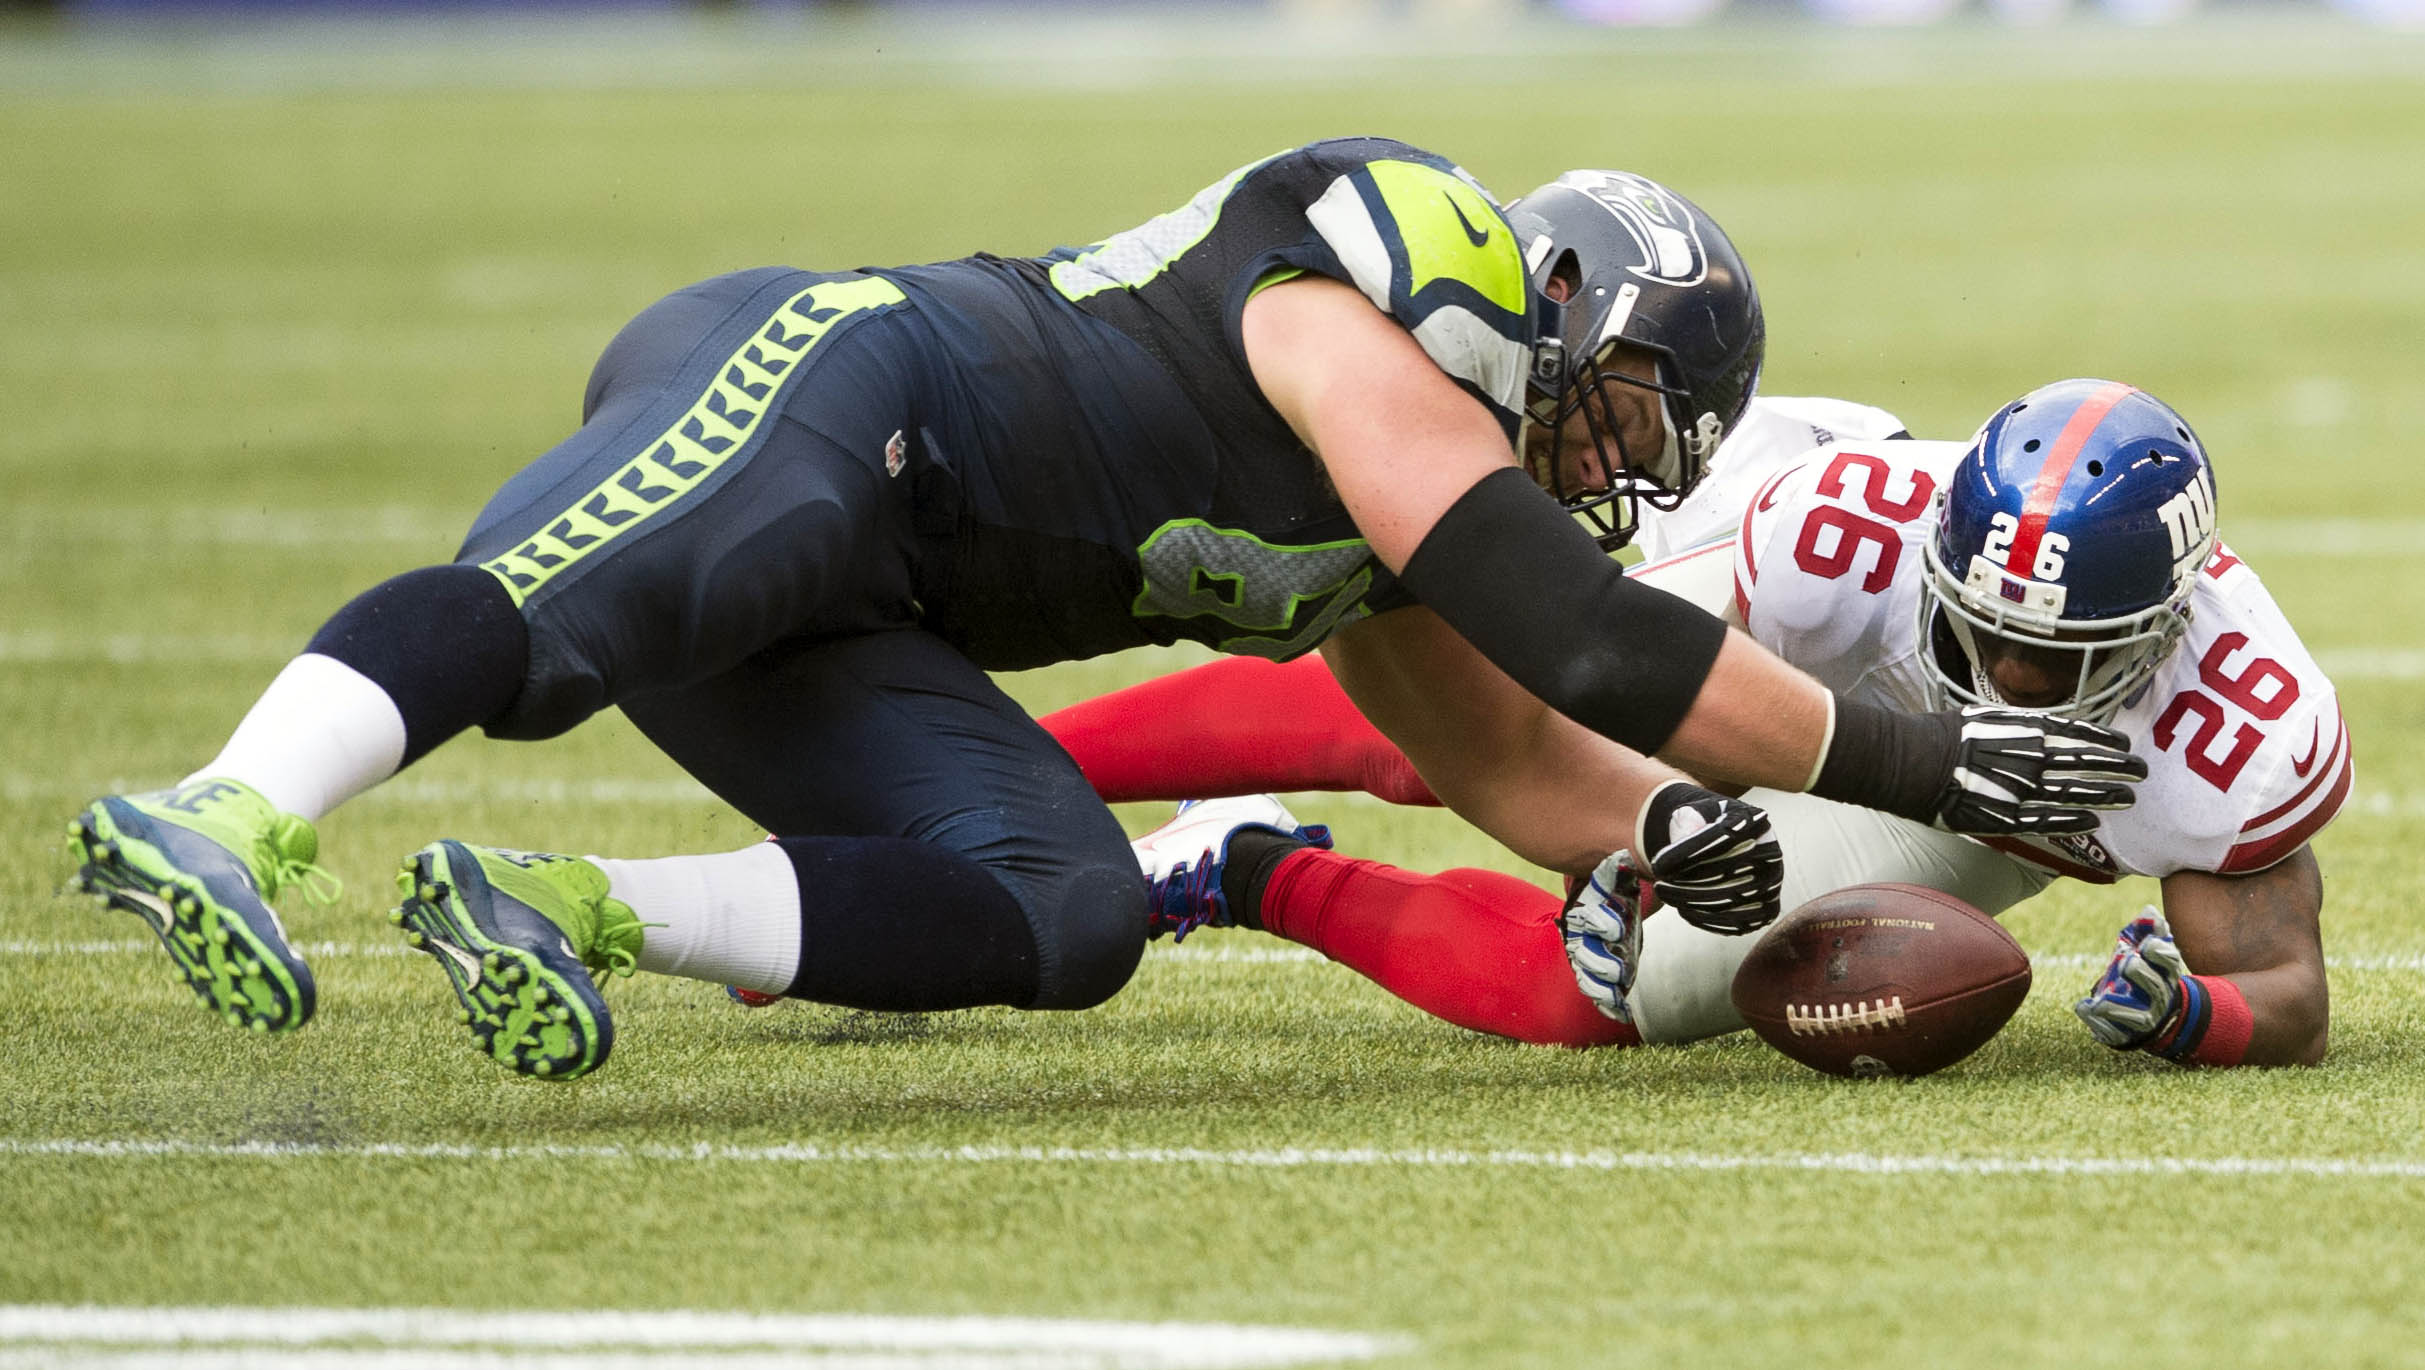 8195106-nfl-new-york-giants-at-seattle-seahawks